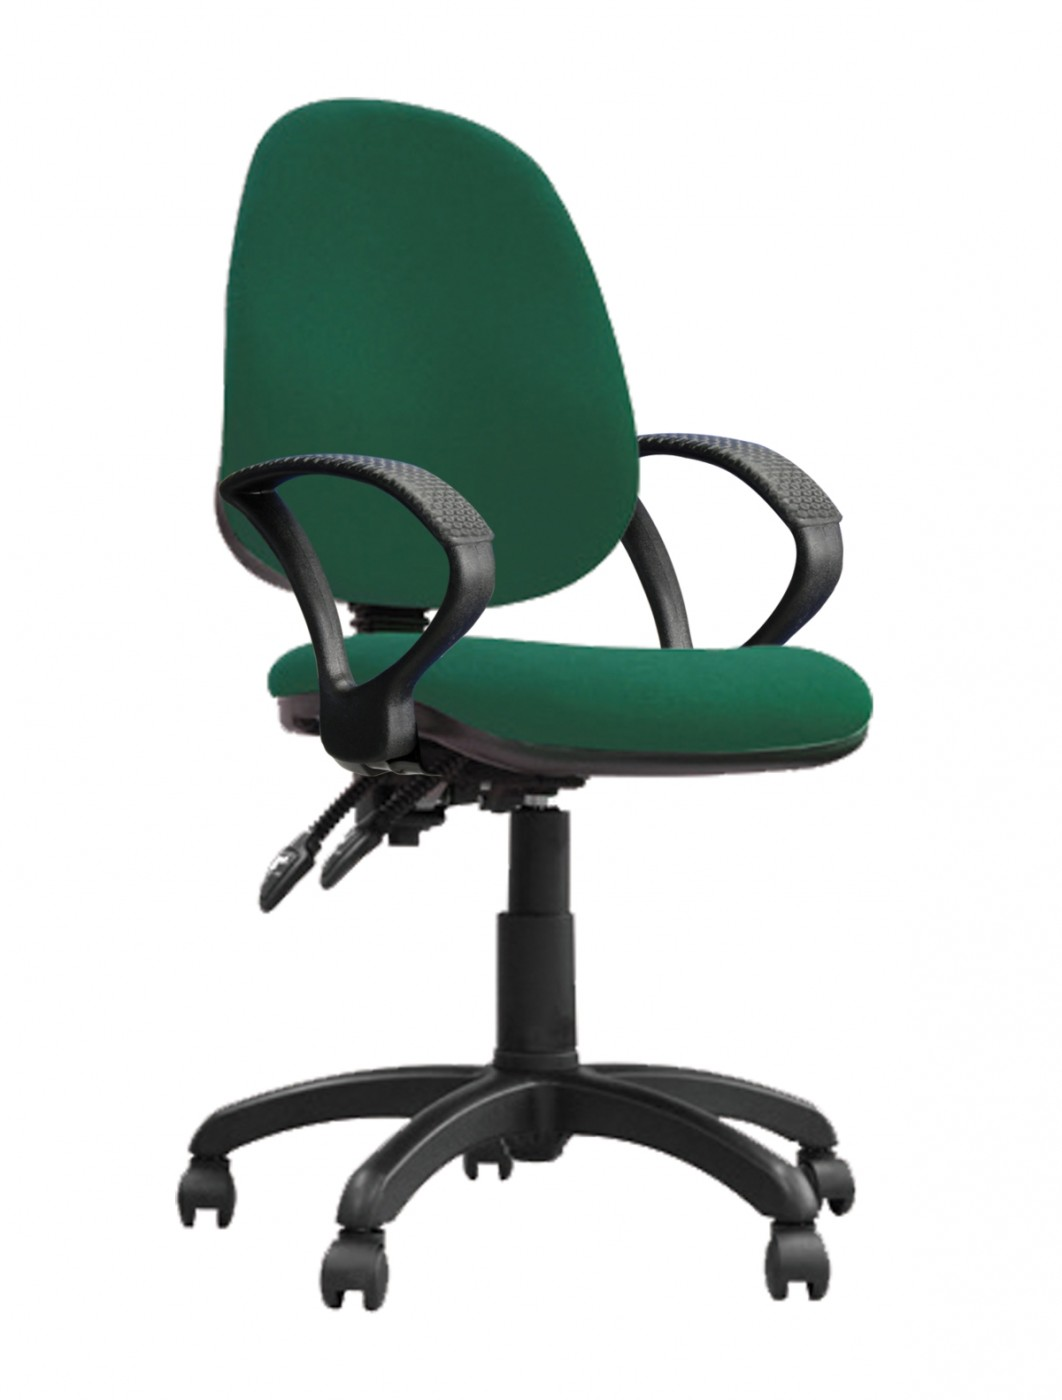 Office Chairs   Eliza Tinsley Java 200 High Back Operator Chair BCF/P505/GN